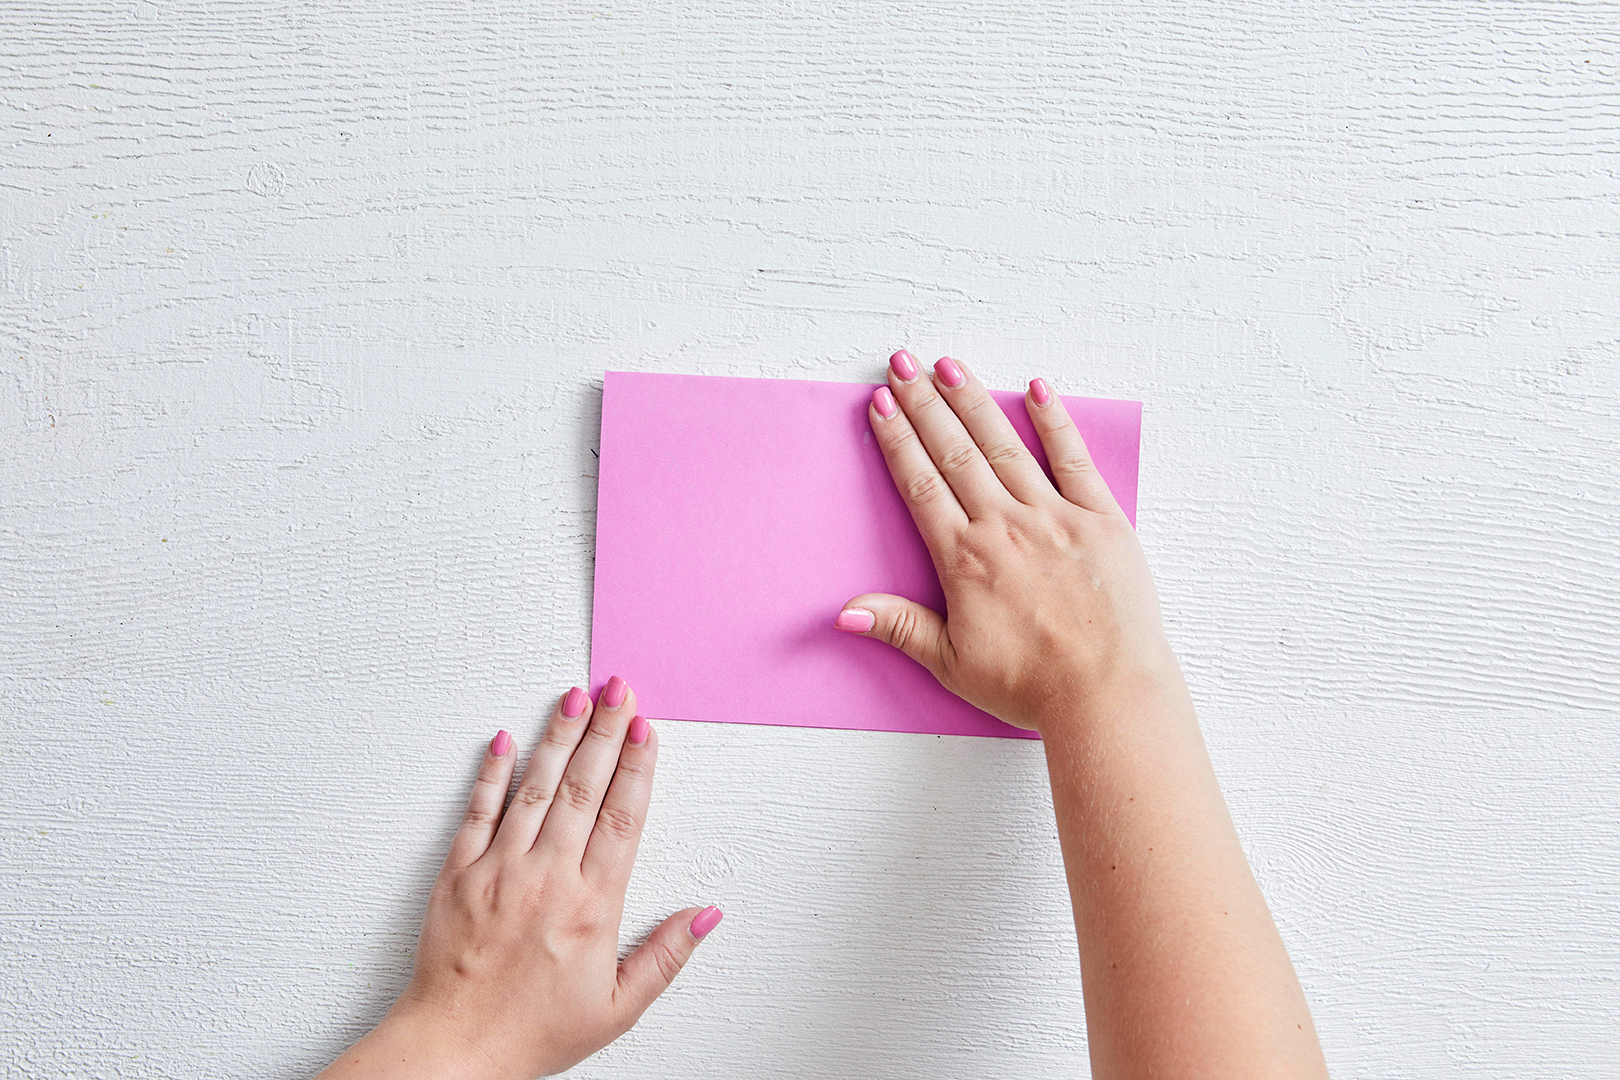 folding pink sheet of paper in half vertically woman's hands